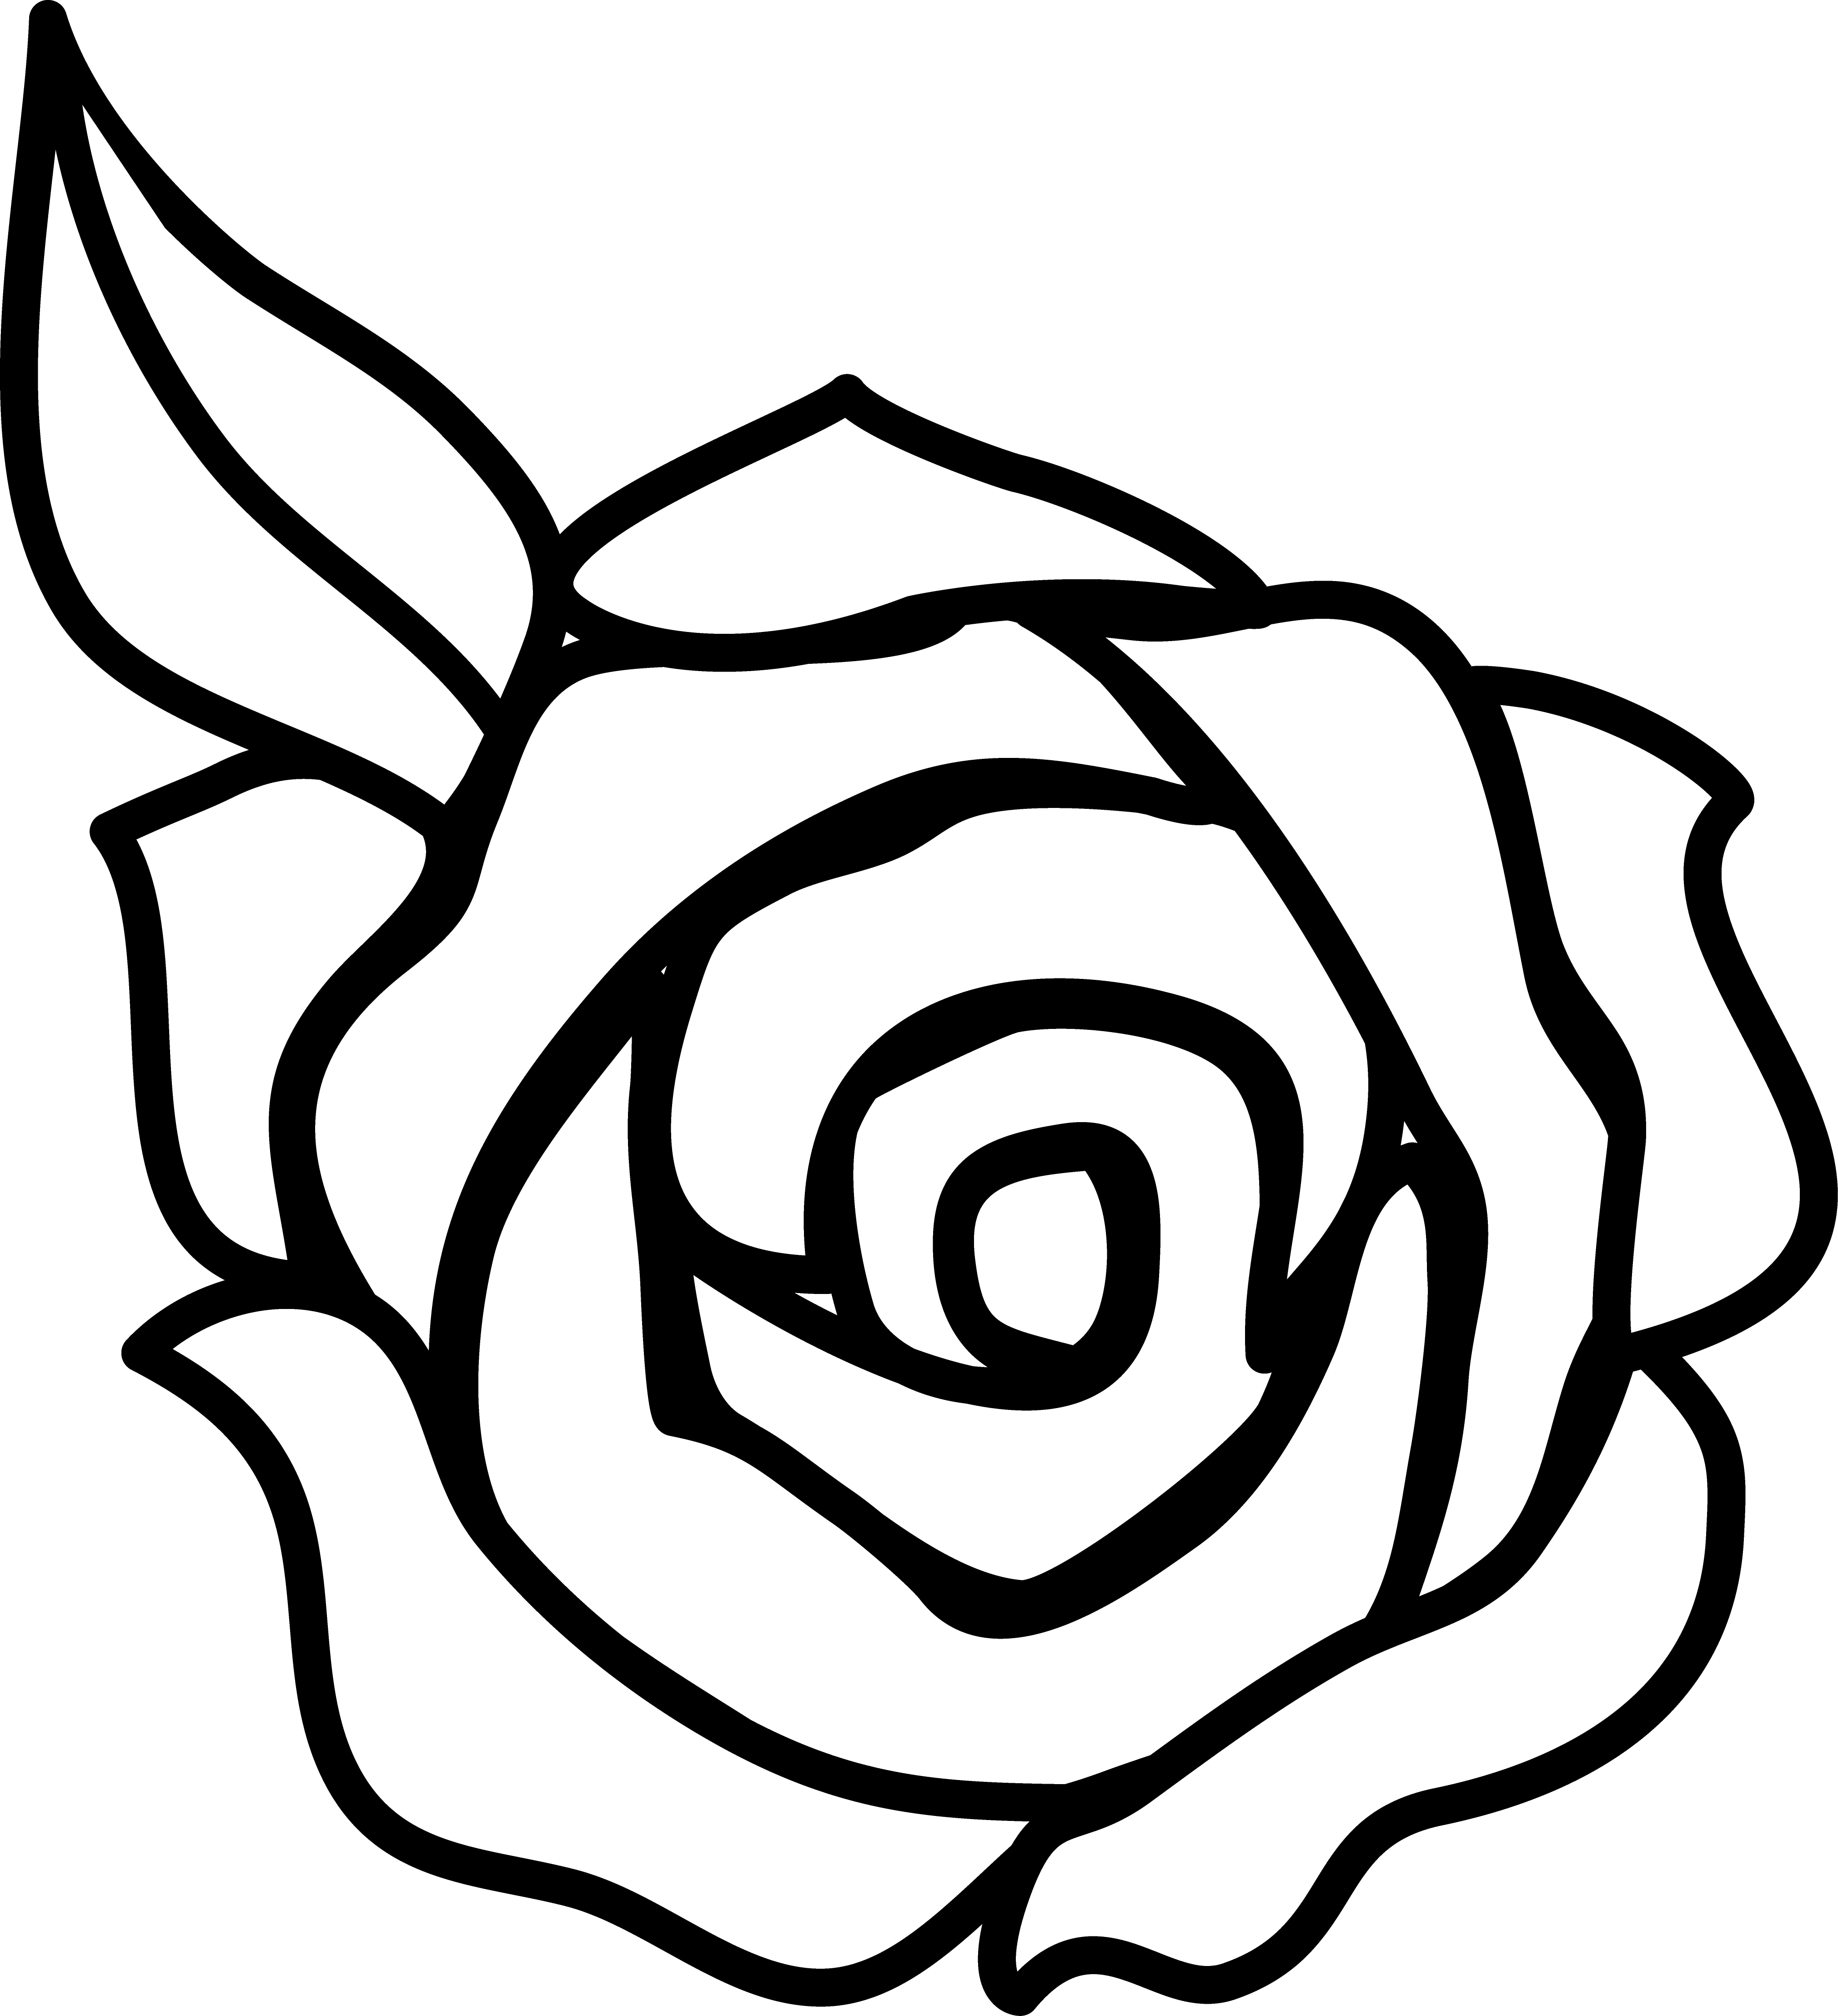 Drawn red rose black and white step by step Clipart Rose Rose Clip Art